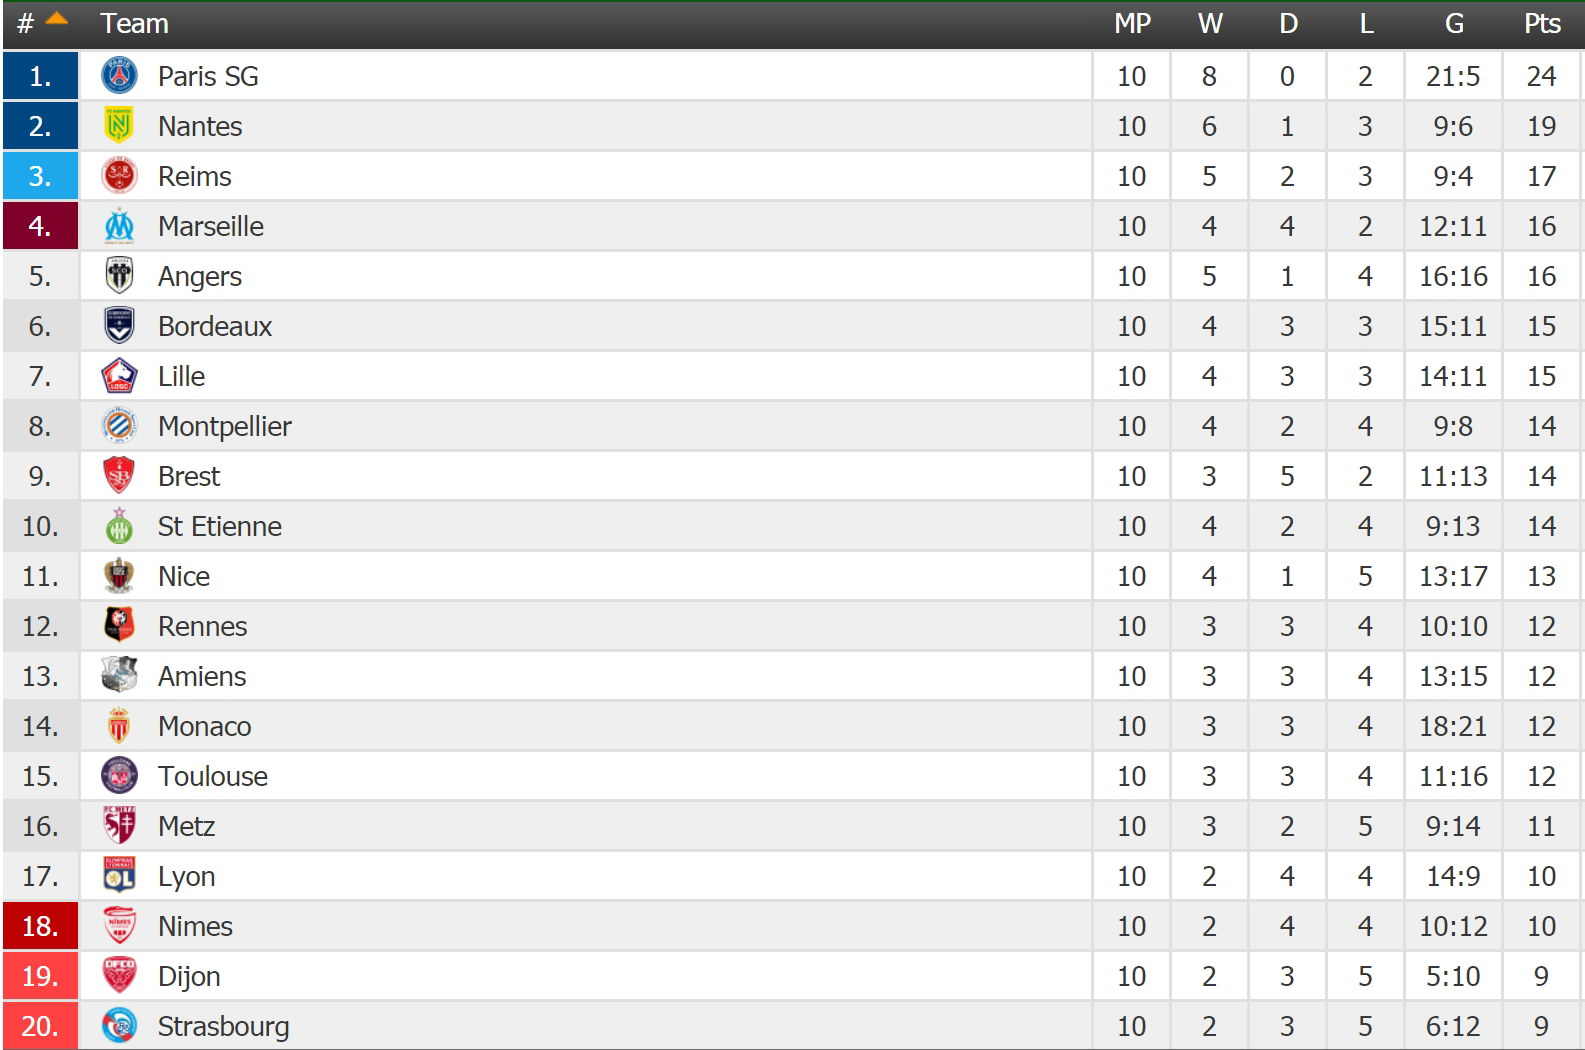 FRANCE Ligue 1 - Round 11 Table